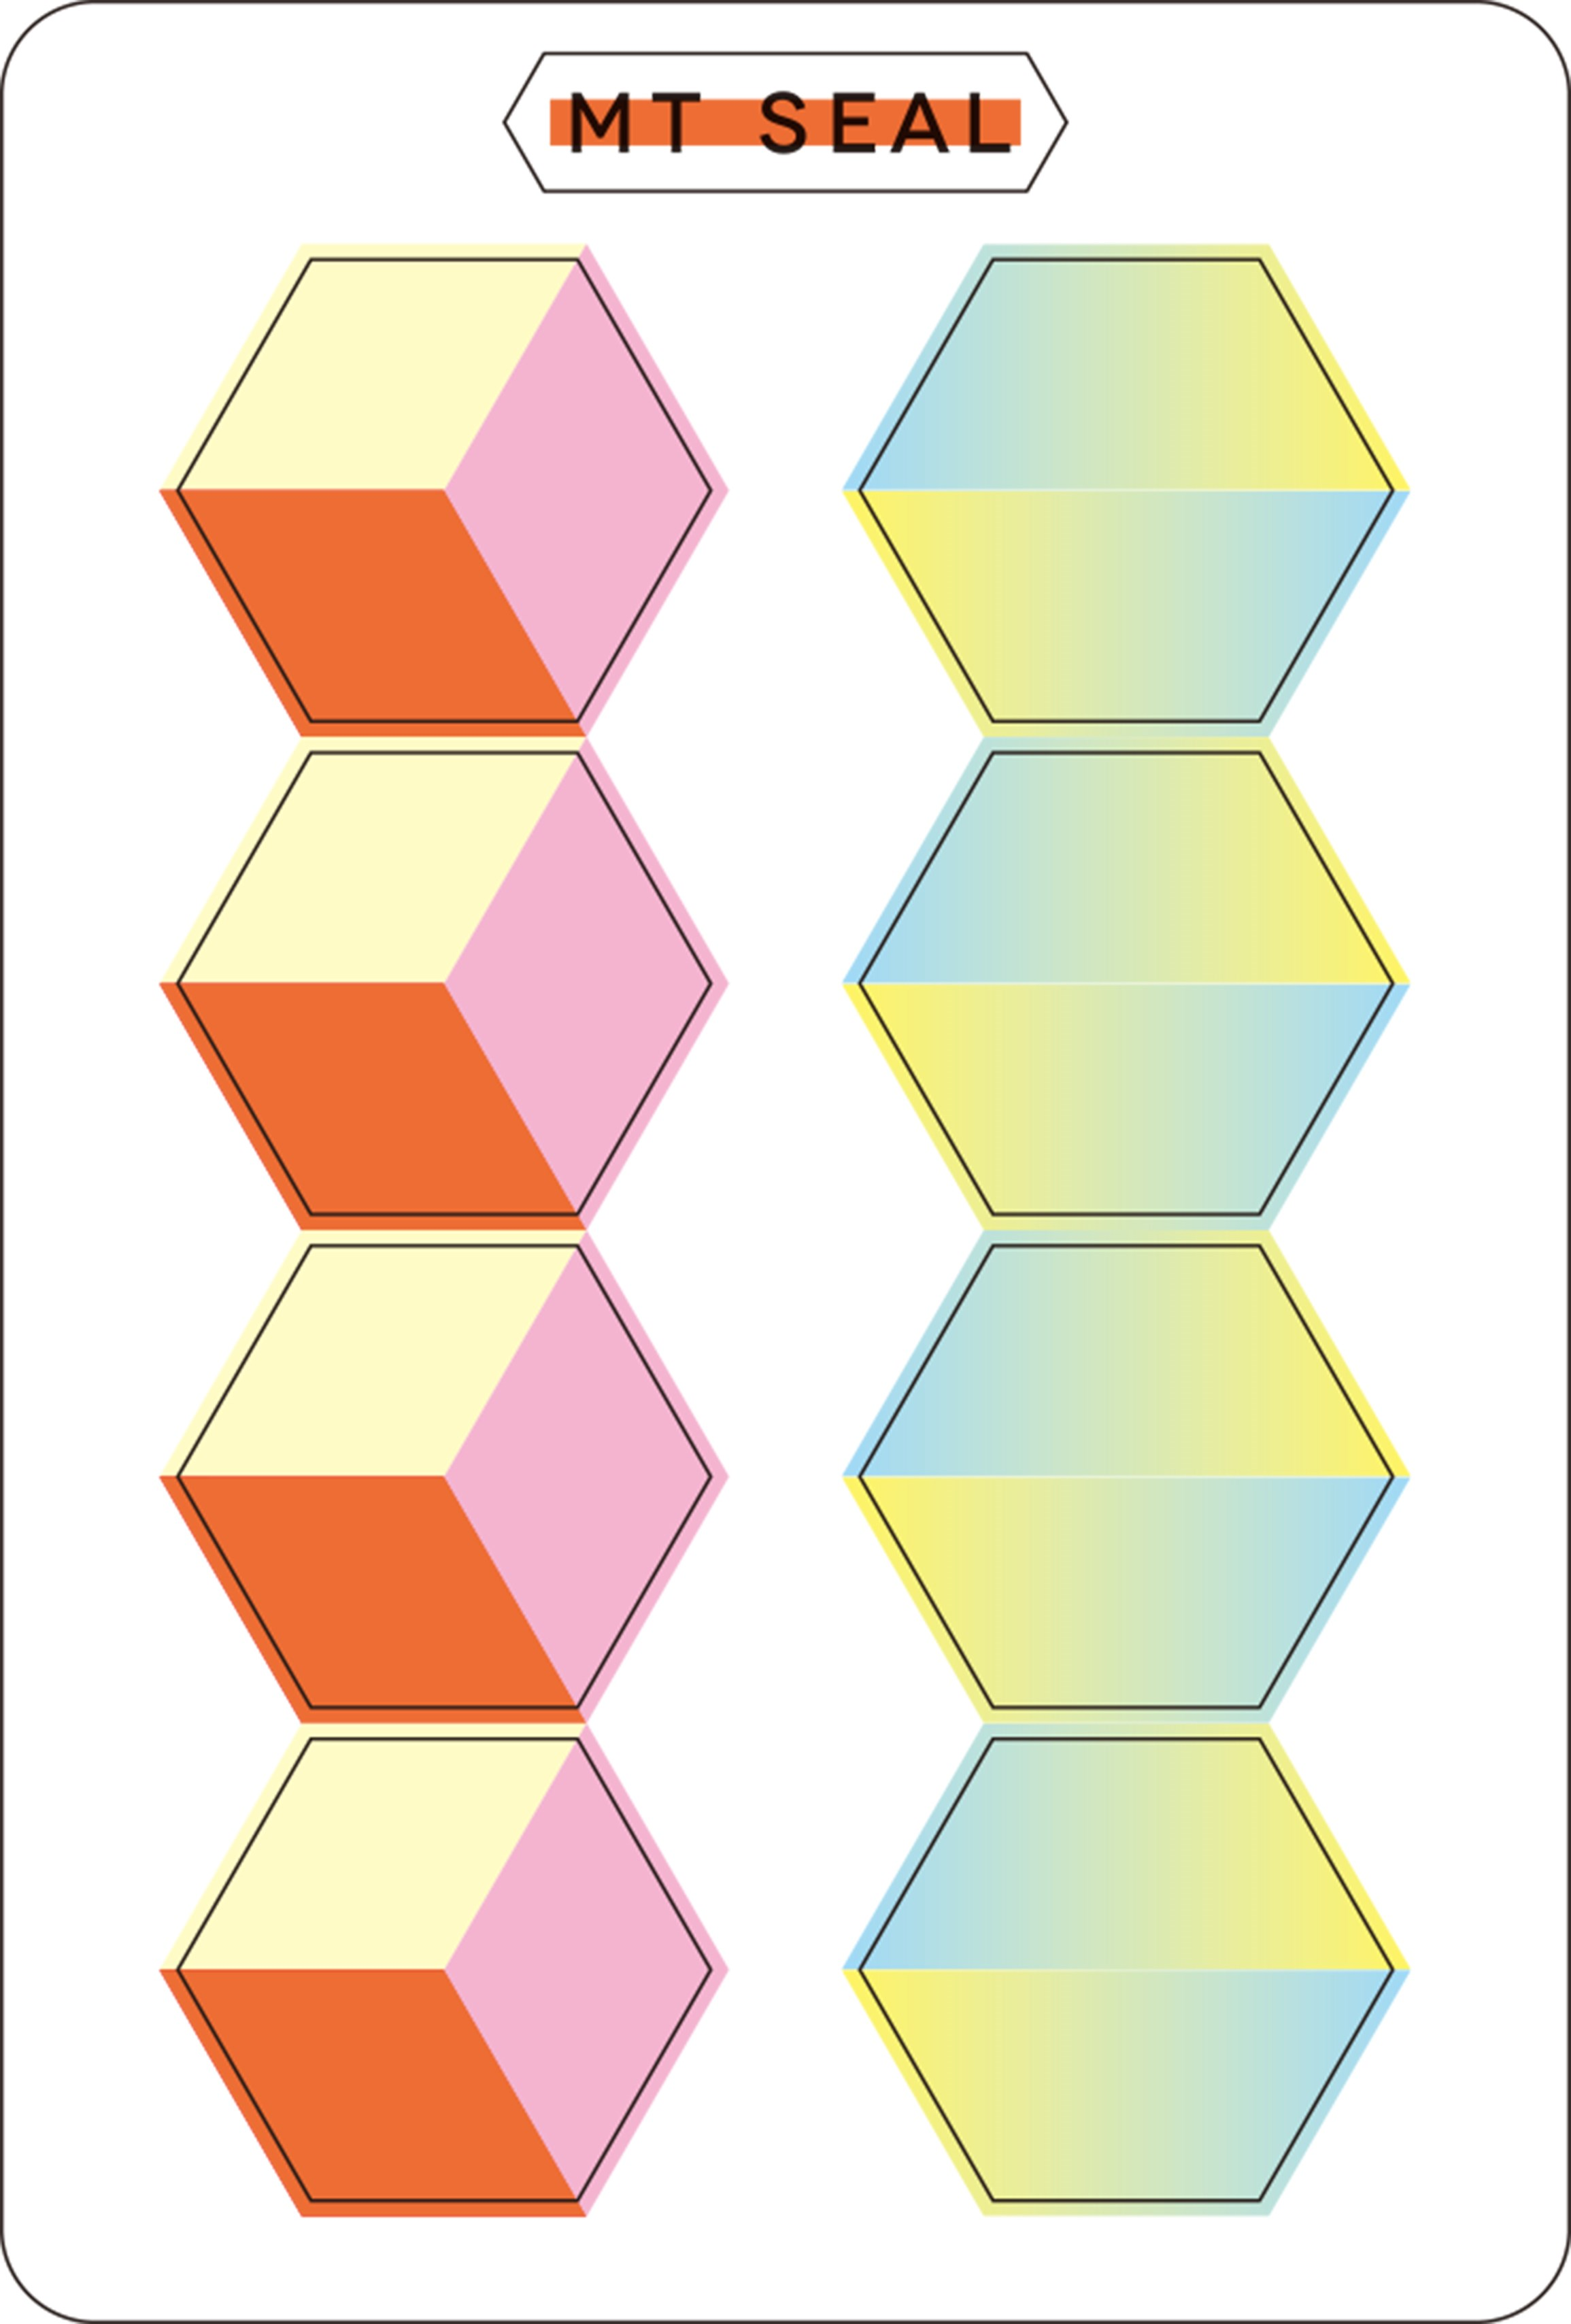 mt-washi-masking-tape-mt-seal-stickers-geometry-hexagon-MTSEAL21-1.jpg